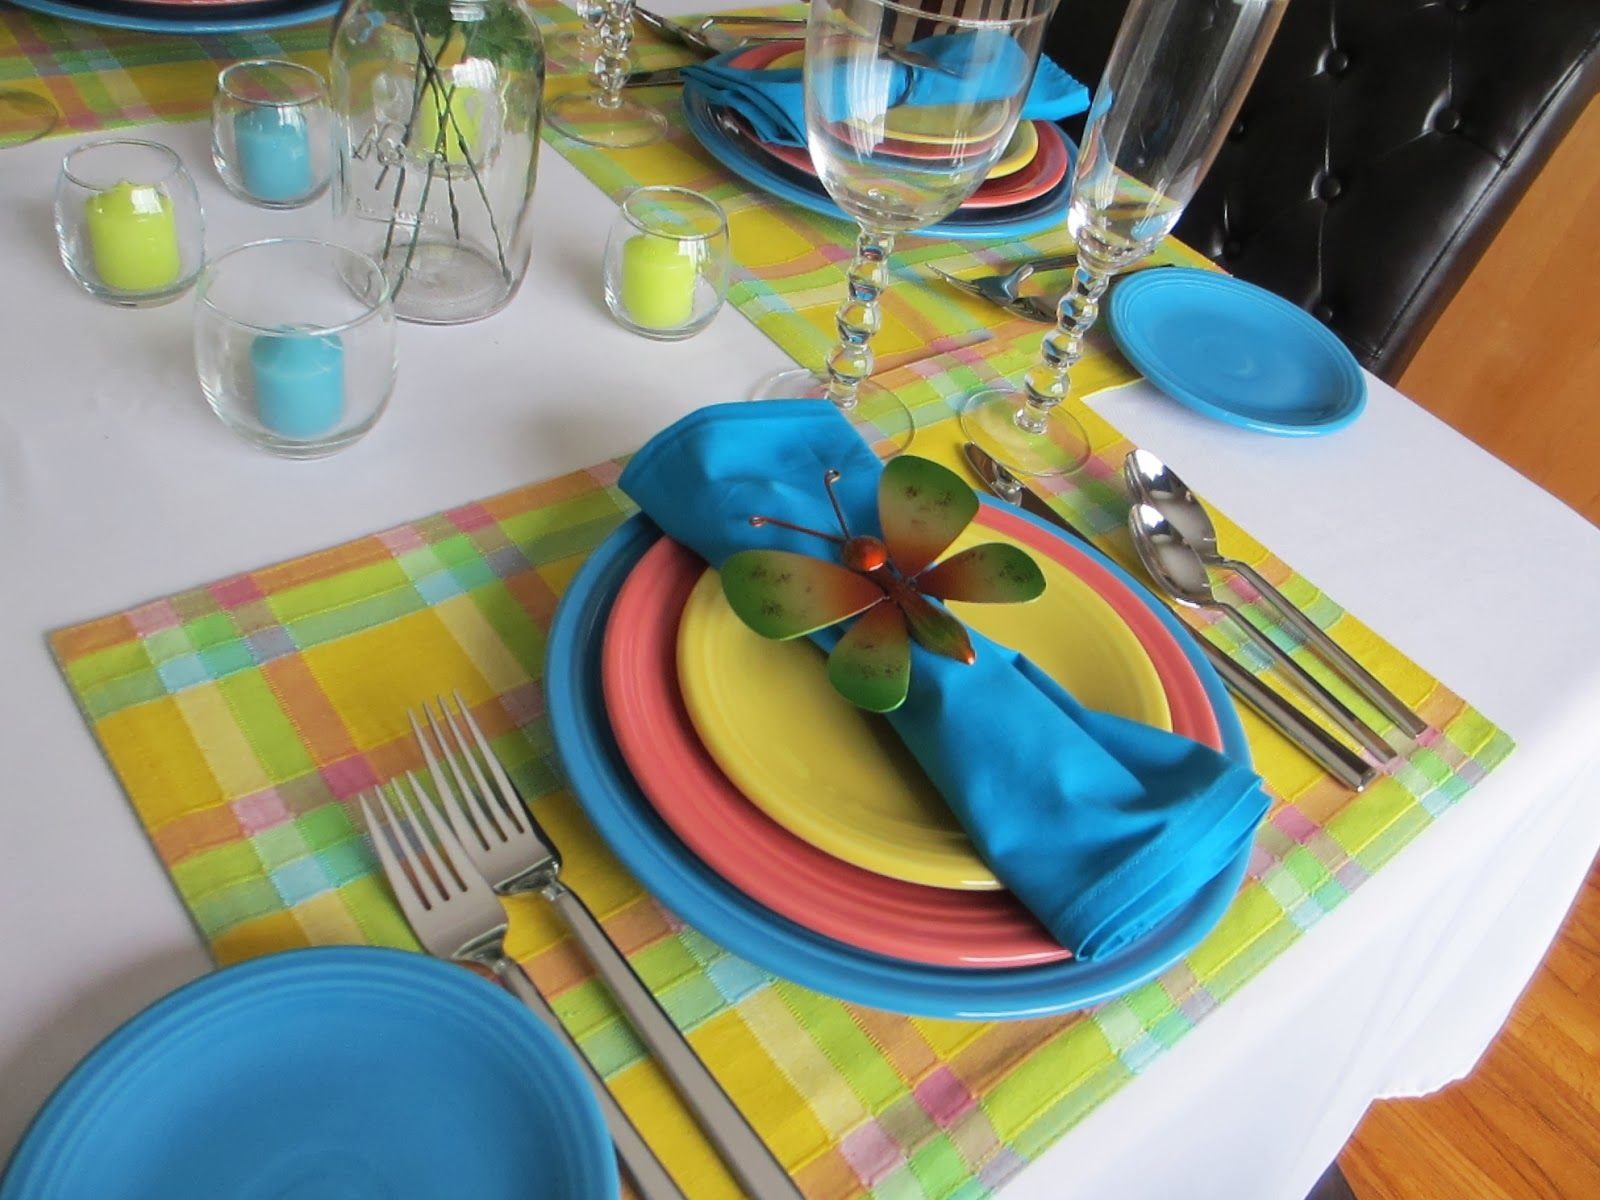 Fiestaware Table Settings | ... Fiesta dinnerware, naturally, since it comes in a variety of colors